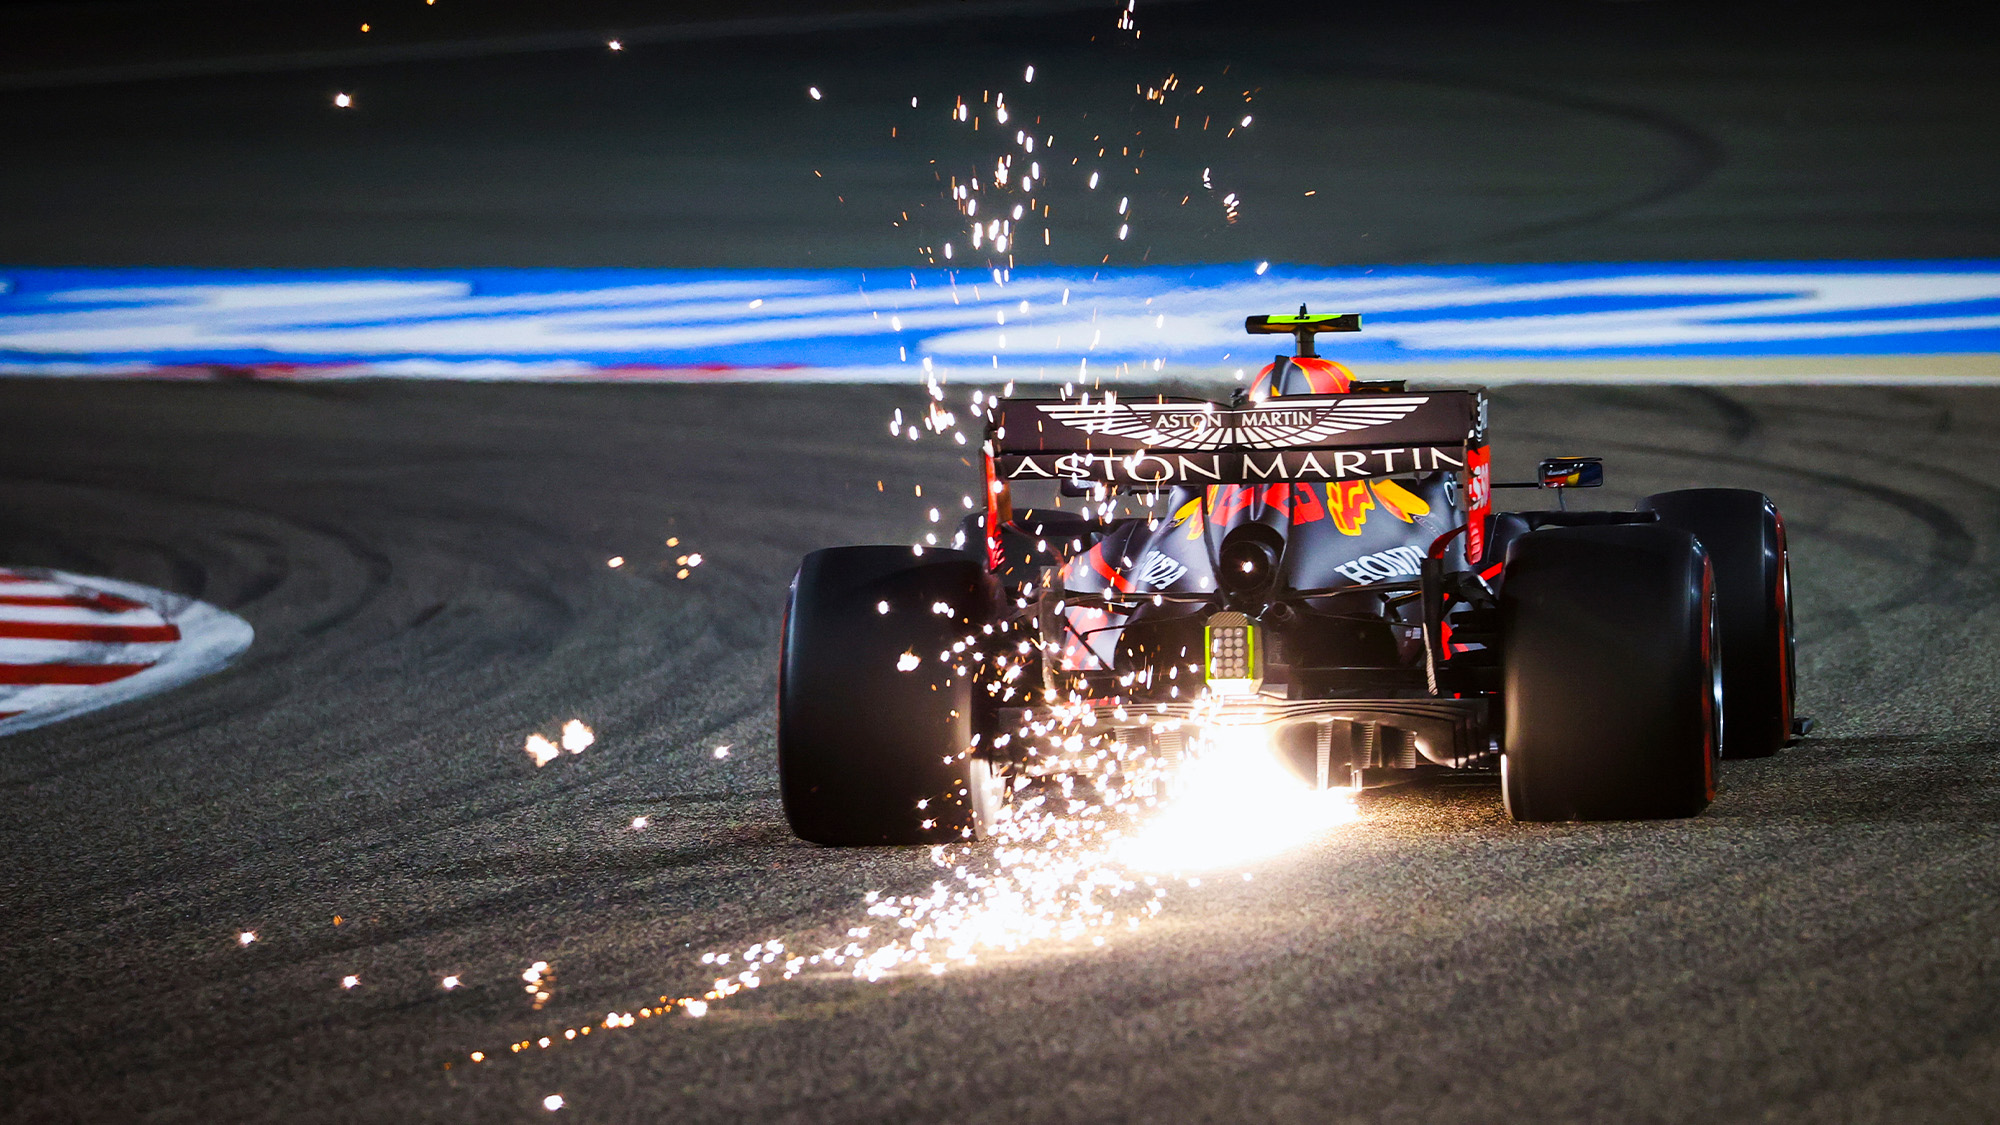 Sparks fly from the Red Bull of Alex Albon during the 2020 F1 Bahrain Grand Prix qualifying